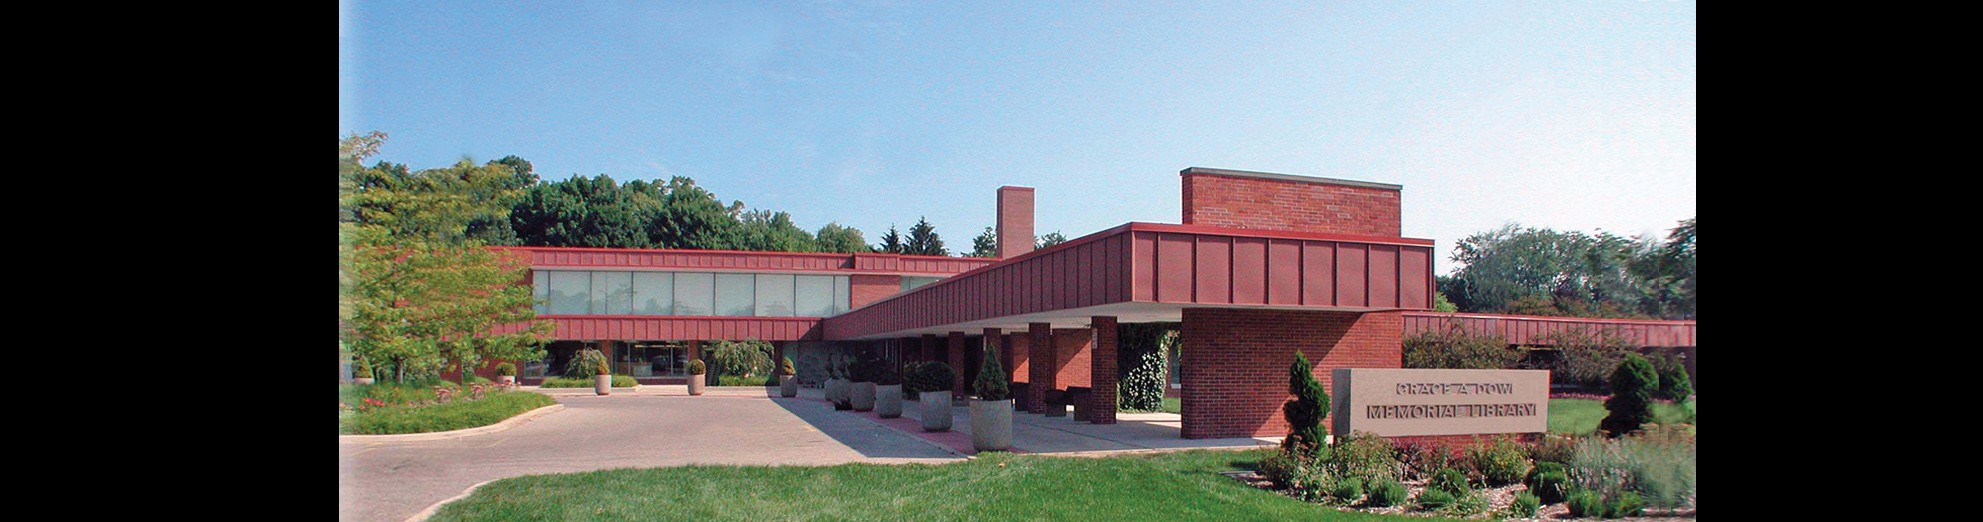 grace a dow memorial library midland mi official website